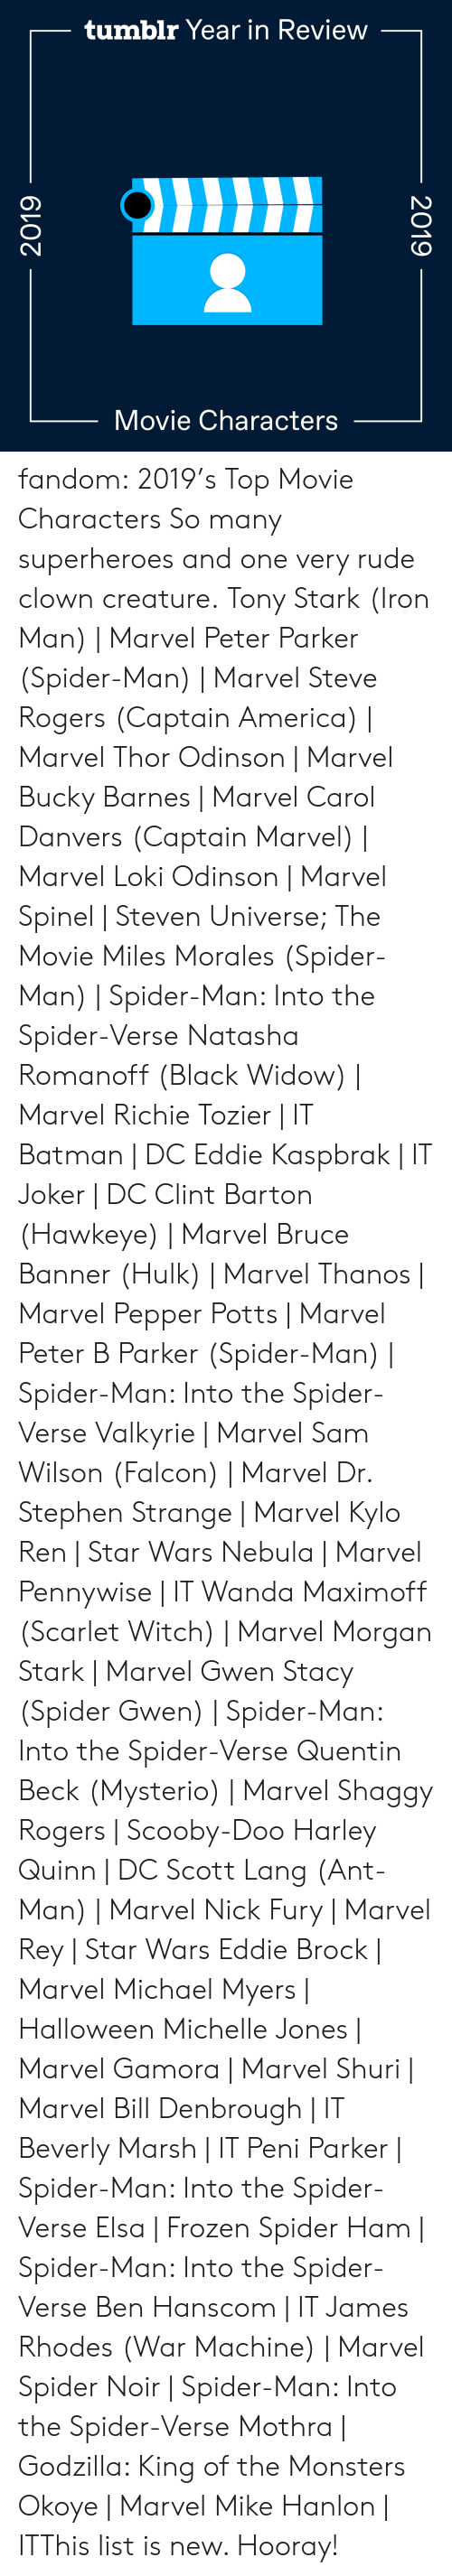 Godzilla: tumblr Year in Review  Movie Characters  2019  2019 fandom:  2019's Top Movie Characters  So many superheroes and one very rude clown creature.  Tony Stark (Iron Man) | Marvel  Peter Parker (Spider-Man) | Marvel  Steve Rogers (Captain America) | Marvel  Thor Odinson | Marvel  Bucky Barnes | Marvel  Carol Danvers (Captain Marvel) | Marvel  Loki Odinson | Marvel  Spinel | Steven Universe; The Movie  Miles Morales (Spider-Man) | Spider-Man: Into the Spider-Verse  Natasha Romanoff (Black Widow) | Marvel  Richie Tozier | IT  Batman | DC  Eddie Kaspbrak | IT  Joker | DC  Clint Barton (Hawkeye) | Marvel  Bruce Banner (Hulk) | Marvel  Thanos | Marvel  Pepper Potts | Marvel  Peter B Parker (Spider-Man) | Spider-Man: Into the Spider-Verse  Valkyrie | Marvel  Sam Wilson (Falcon) | Marvel  Dr. Stephen Strange | Marvel  Kylo Ren | Star Wars  Nebula | Marvel  Pennywise | IT  Wanda Maximoff (Scarlet Witch) | Marvel  Morgan Stark | Marvel  Gwen Stacy (Spider Gwen) | Spider-Man: Into the Spider-Verse  Quentin Beck (Mysterio) | Marvel  Shaggy Rogers | Scooby-Doo  Harley Quinn | DC  Scott Lang (Ant-Man) | Marvel  Nick Fury | Marvel  Rey | Star Wars  Eddie Brock | Marvel  Michael Myers | Halloween  Michelle Jones | Marvel  Gamora | Marvel  Shuri | Marvel  Bill Denbrough | IT  Beverly Marsh | IT  Peni Parker | Spider-Man: Into the Spider-Verse  Elsa | Frozen  Spider Ham | Spider-Man: Into the Spider-Verse  Ben Hanscom | IT  James Rhodes (War Machine) | Marvel  Spider Noir | Spider-Man: Into the Spider-Verse  Mothra | Godzilla: King of the Monsters  Okoye | Marvel Mike Hanlon | ITThis list is new. Hooray!